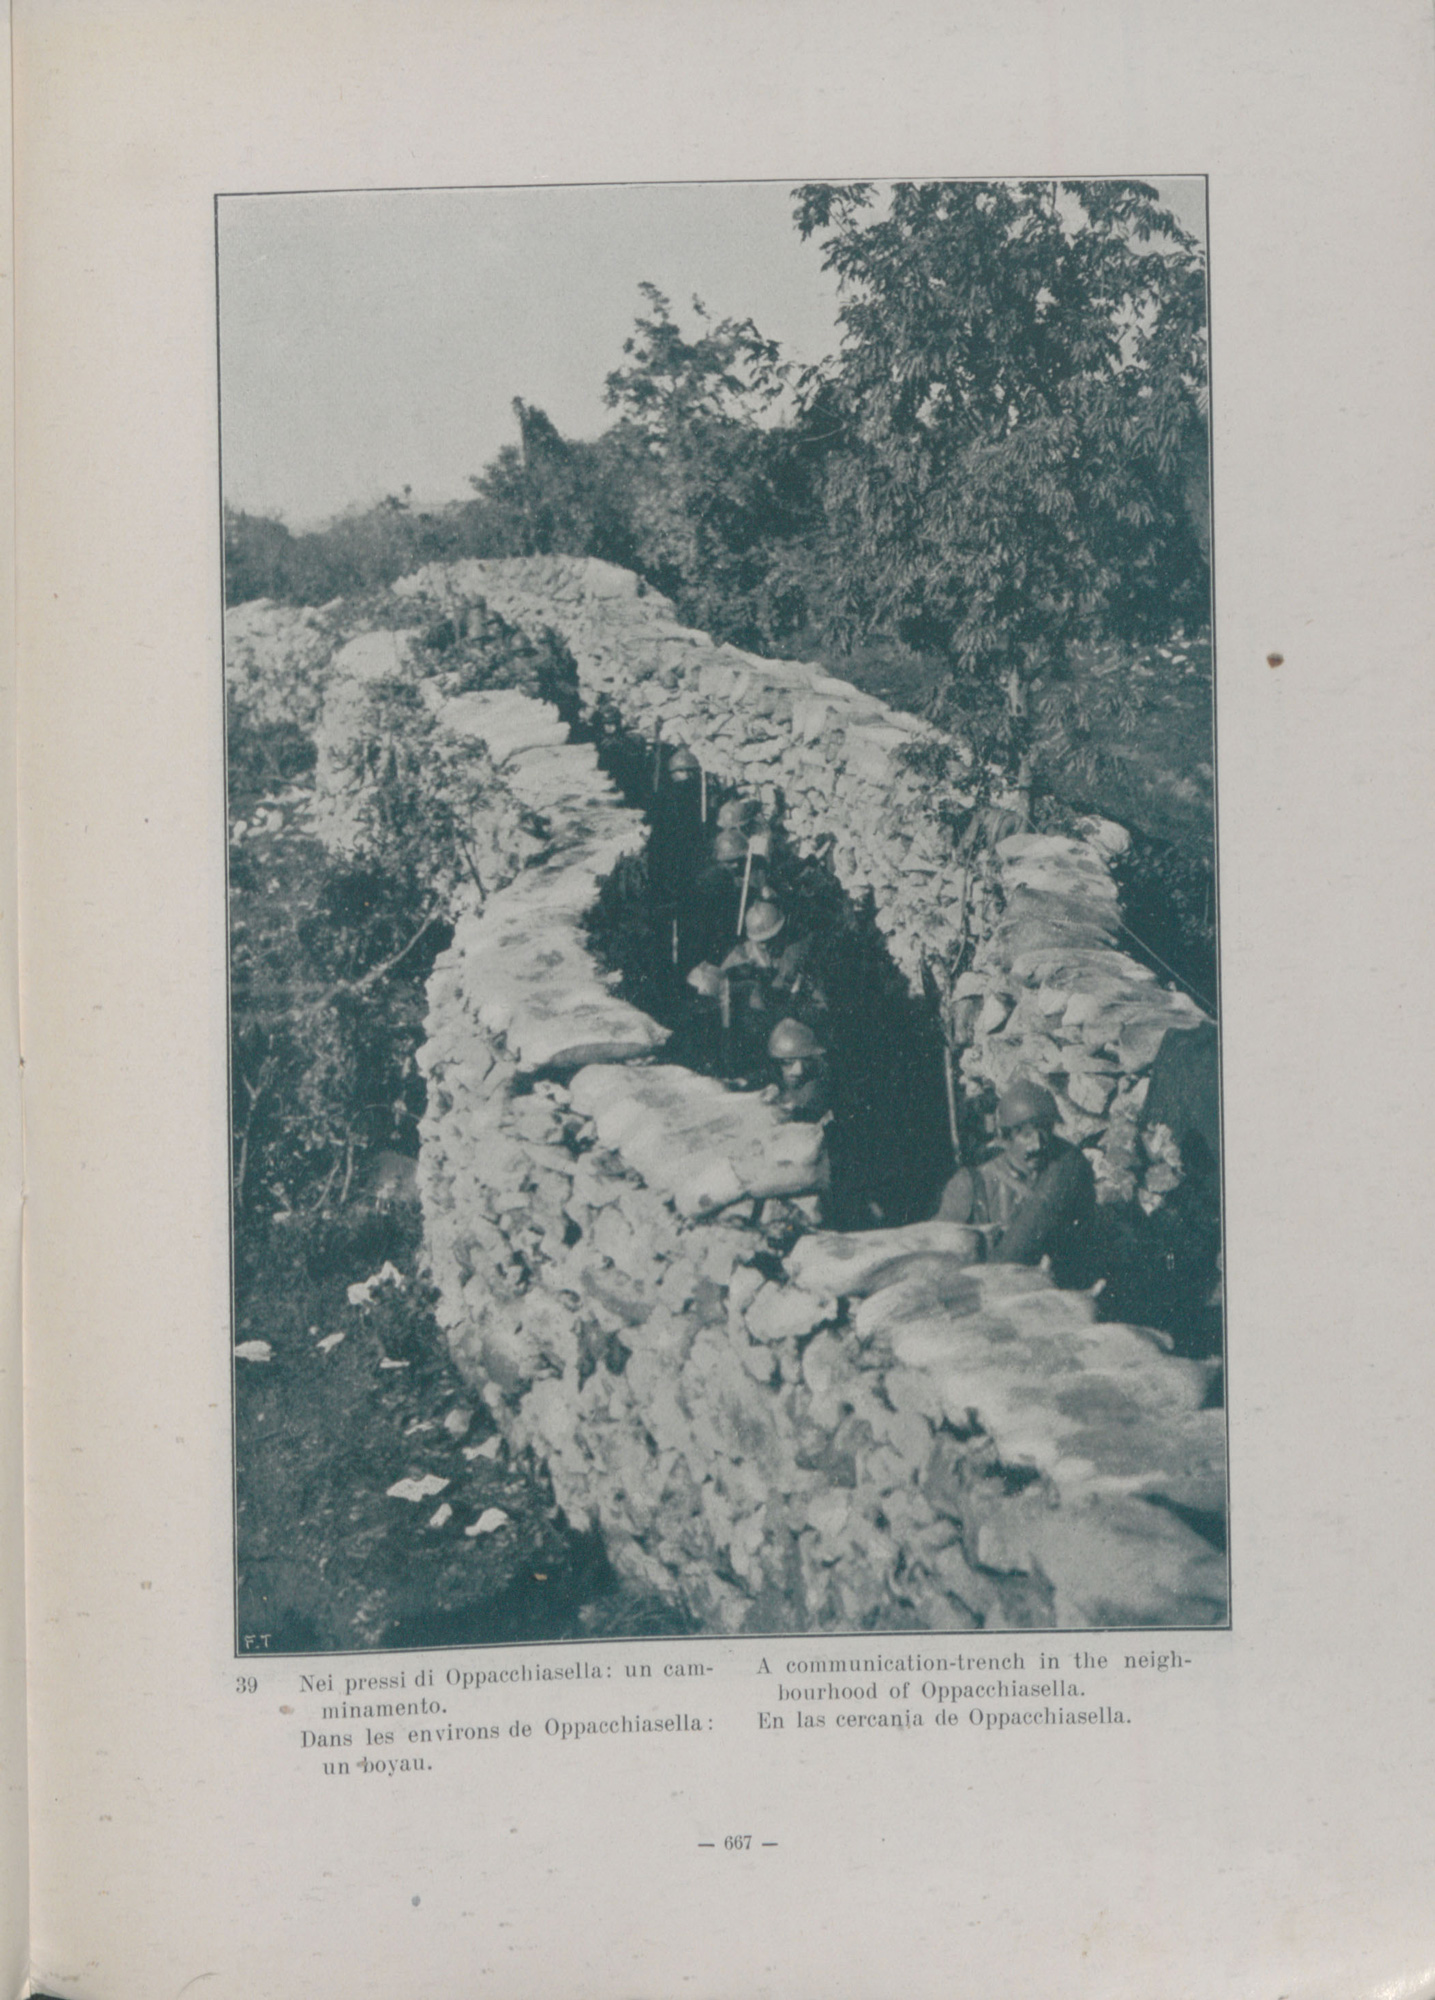 Communication trenches constructed from walls of sandbags, connecting the fire trench with the reserve trenches. This was taken near Oppachiasella on the Italian-Slovenian border.